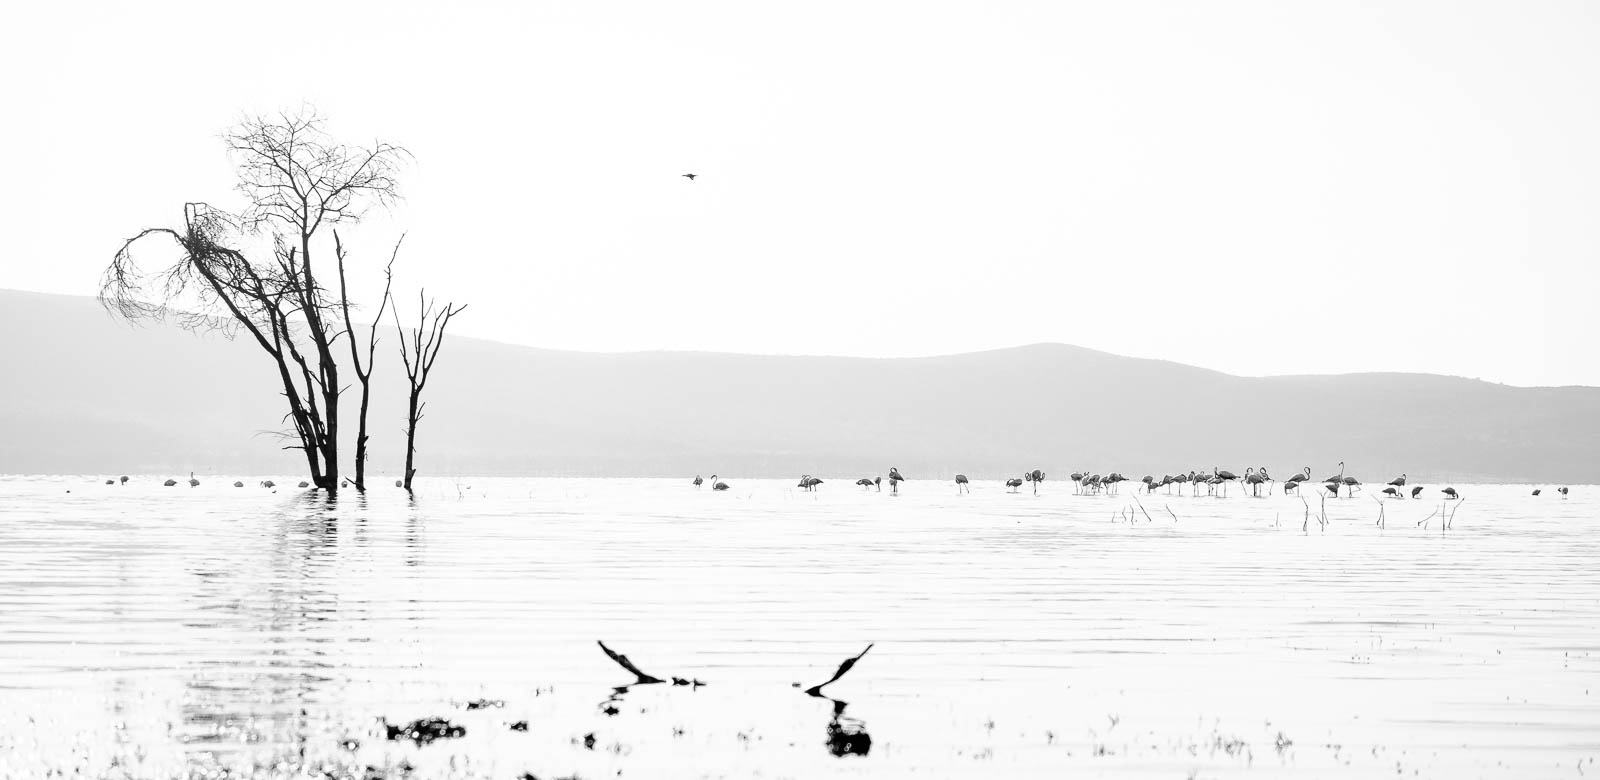 Morning at Lake Nakuru, Kenya